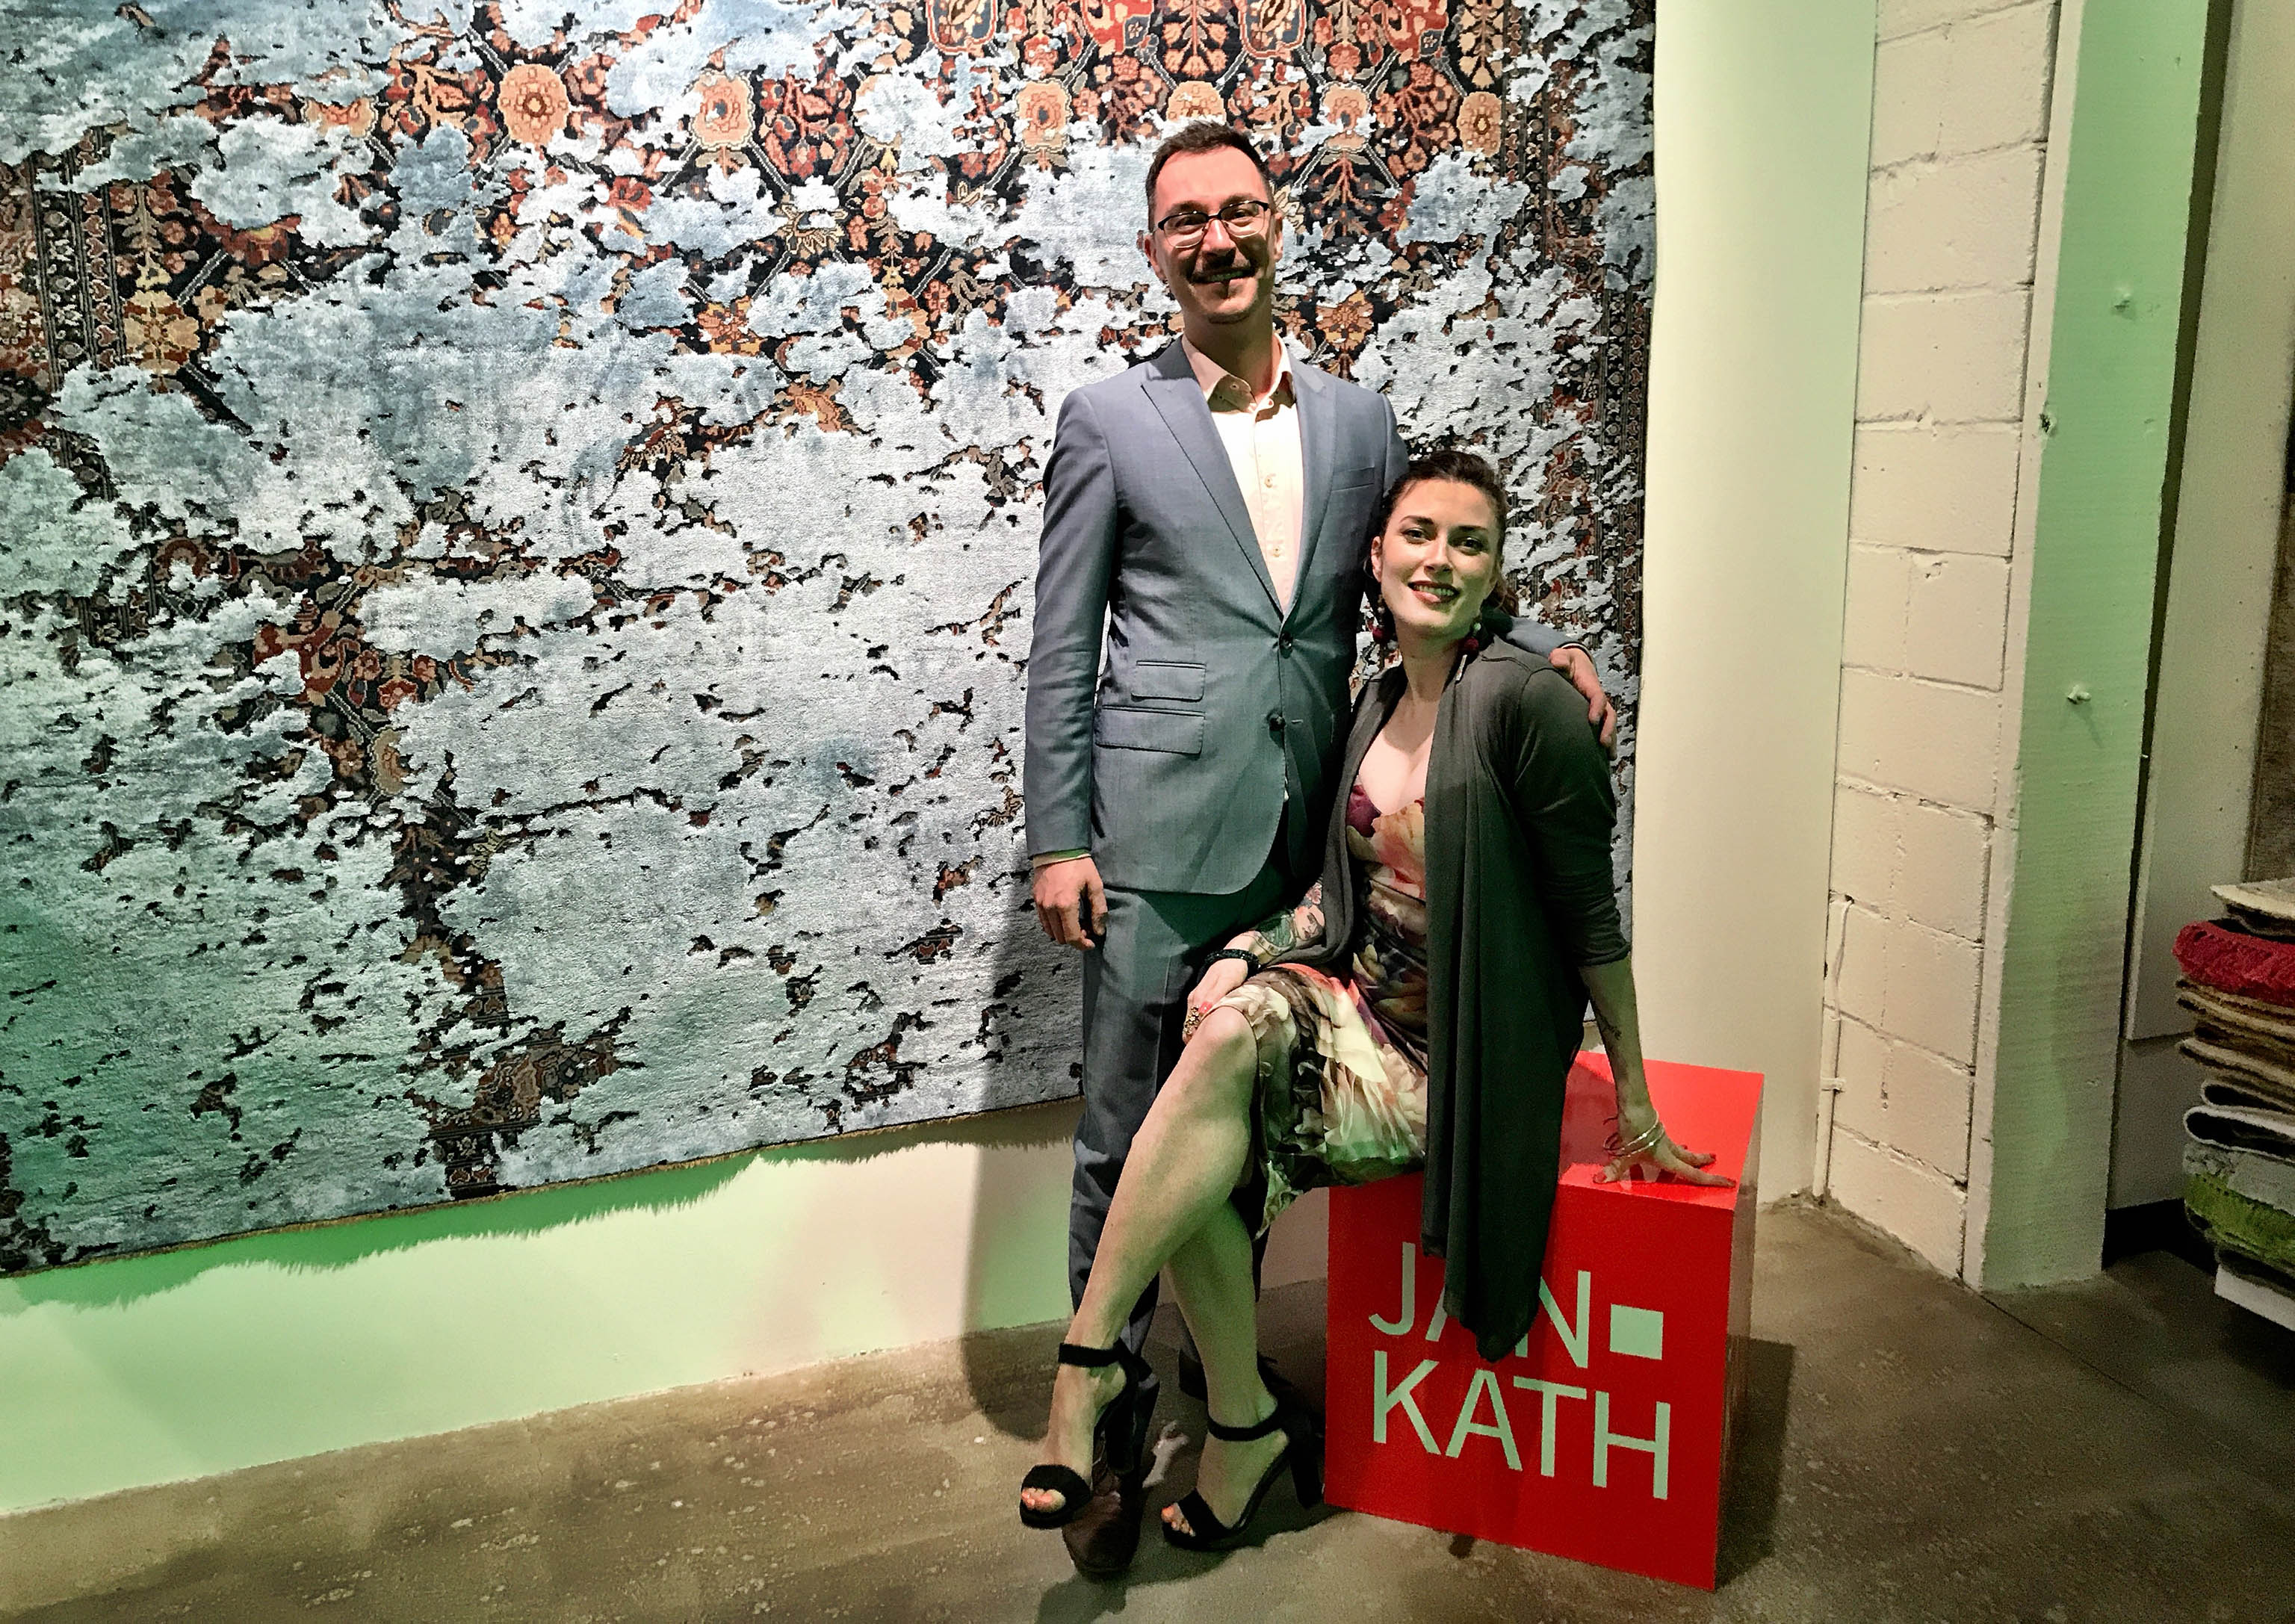 Yvan Semenowycz and Robyn Waffle are a dynamic and intoxicating couple who run Finlay and Kath's new Jan Kath Toronto showroom. | Image by The Ruggist.